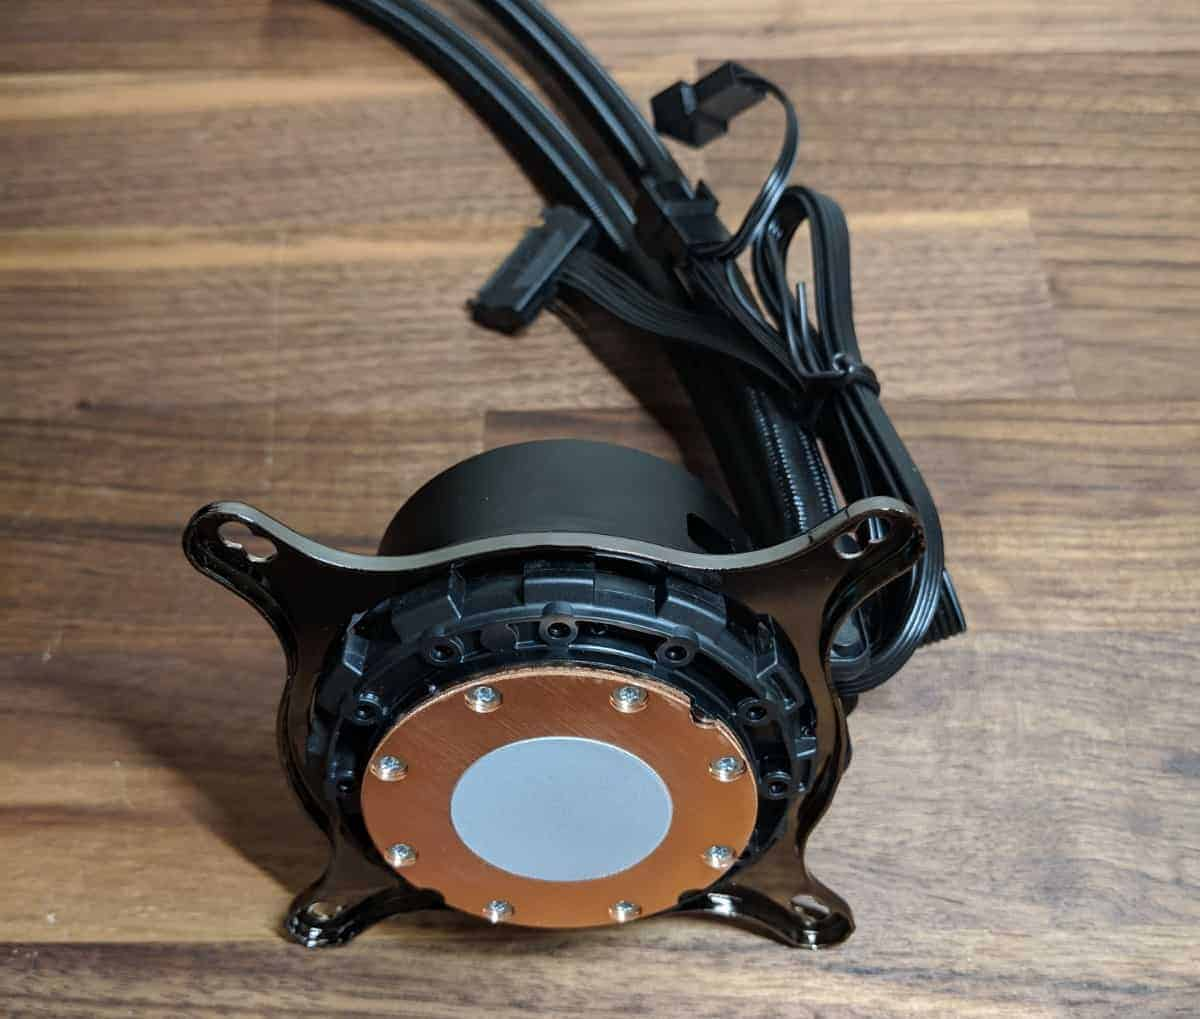 ASUS-ROG-AIO-Cooler-Photos-17 Asus ROG Ryuo 240 Review